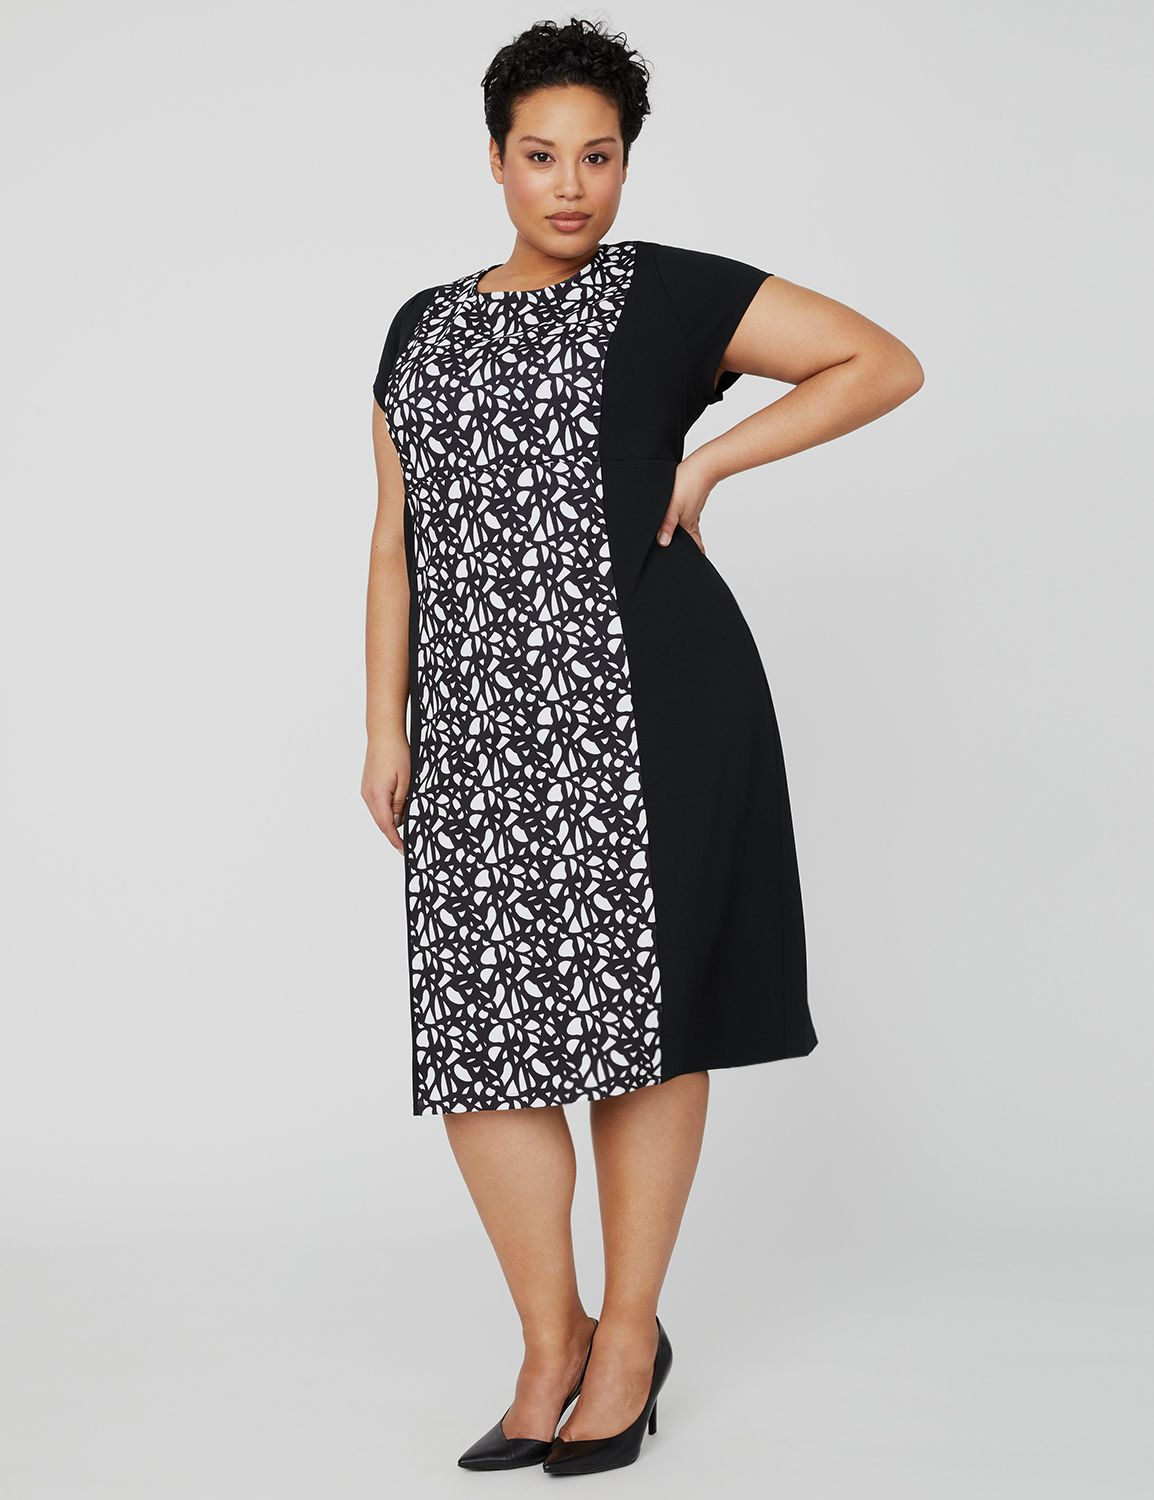 Mirage Crepe Dress 1091427 Printed Knit Crepe Dress MP-300100791